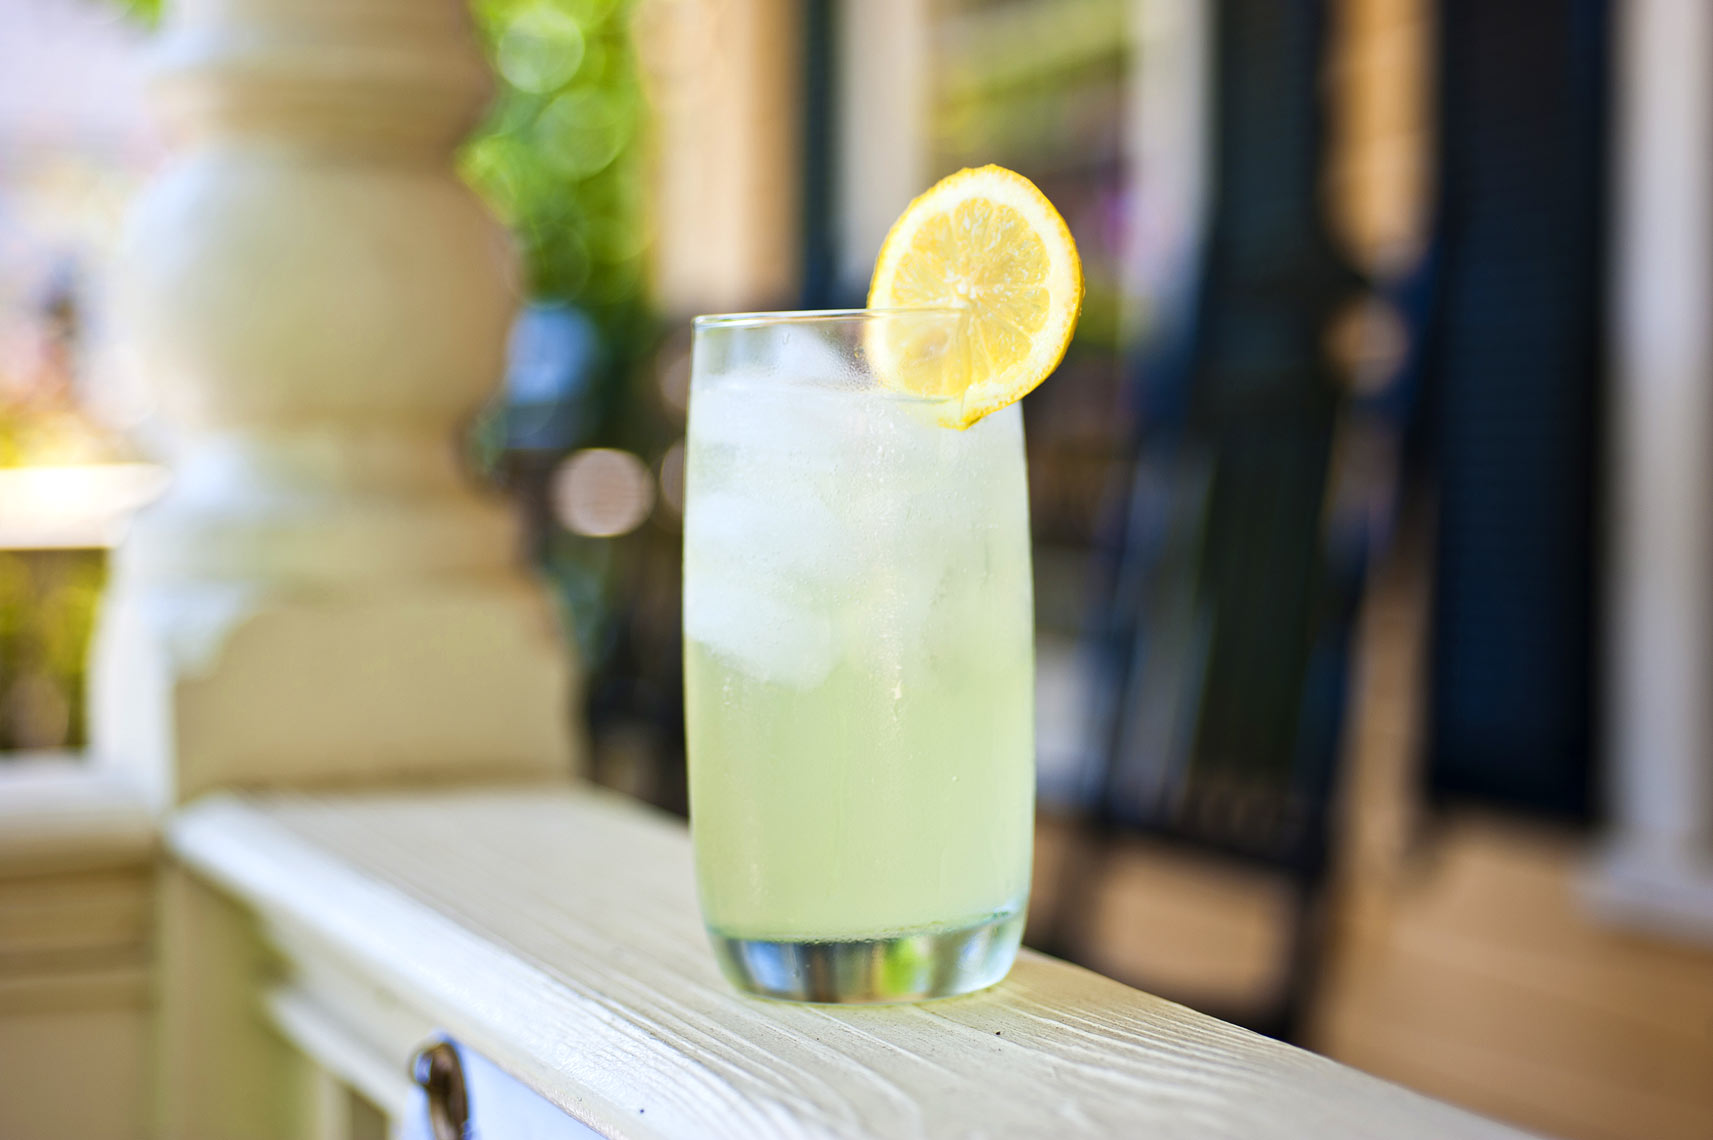 Raleigh food photography bryan regan lemonade